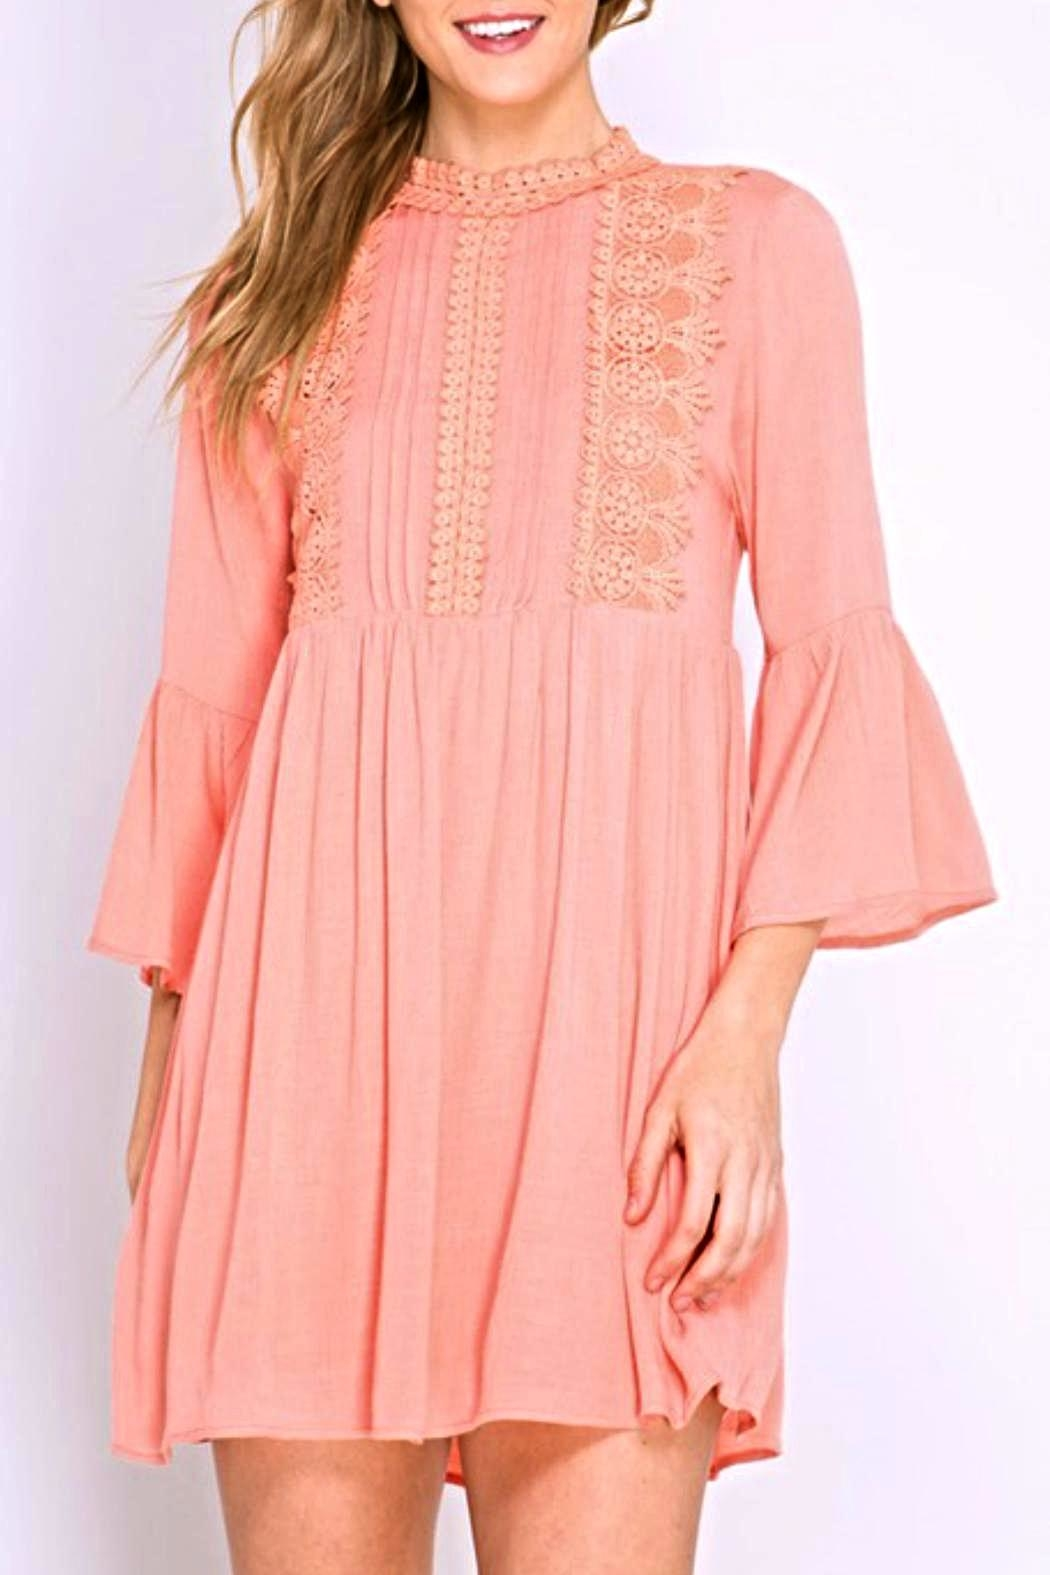 She + Sky Lace Pintuck Dress - Main Image